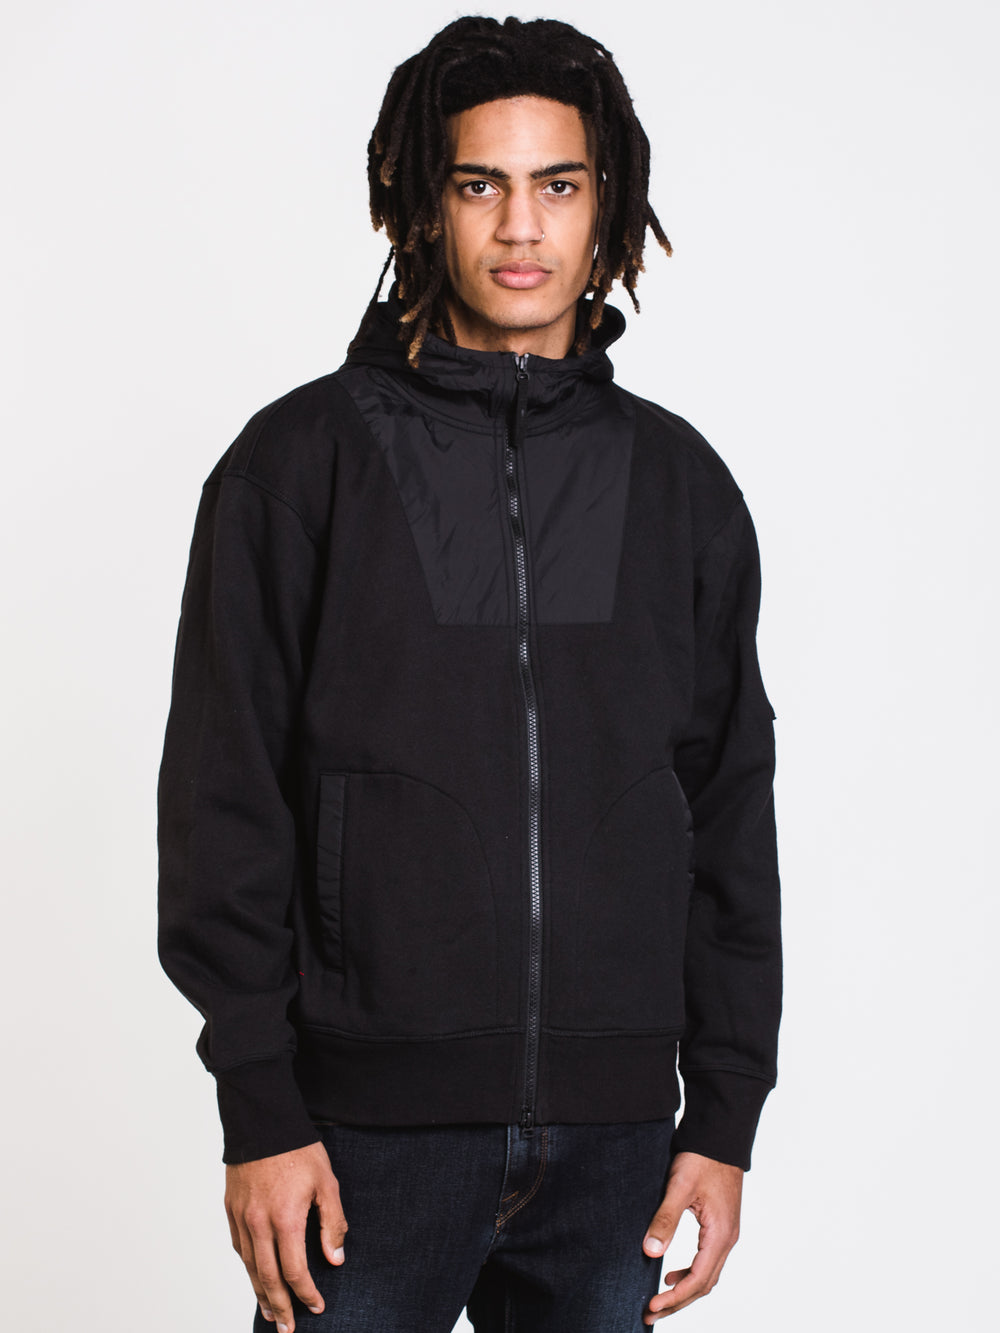 MENS SL FULL ZIP FUNNELNECK JACKET - BLACK